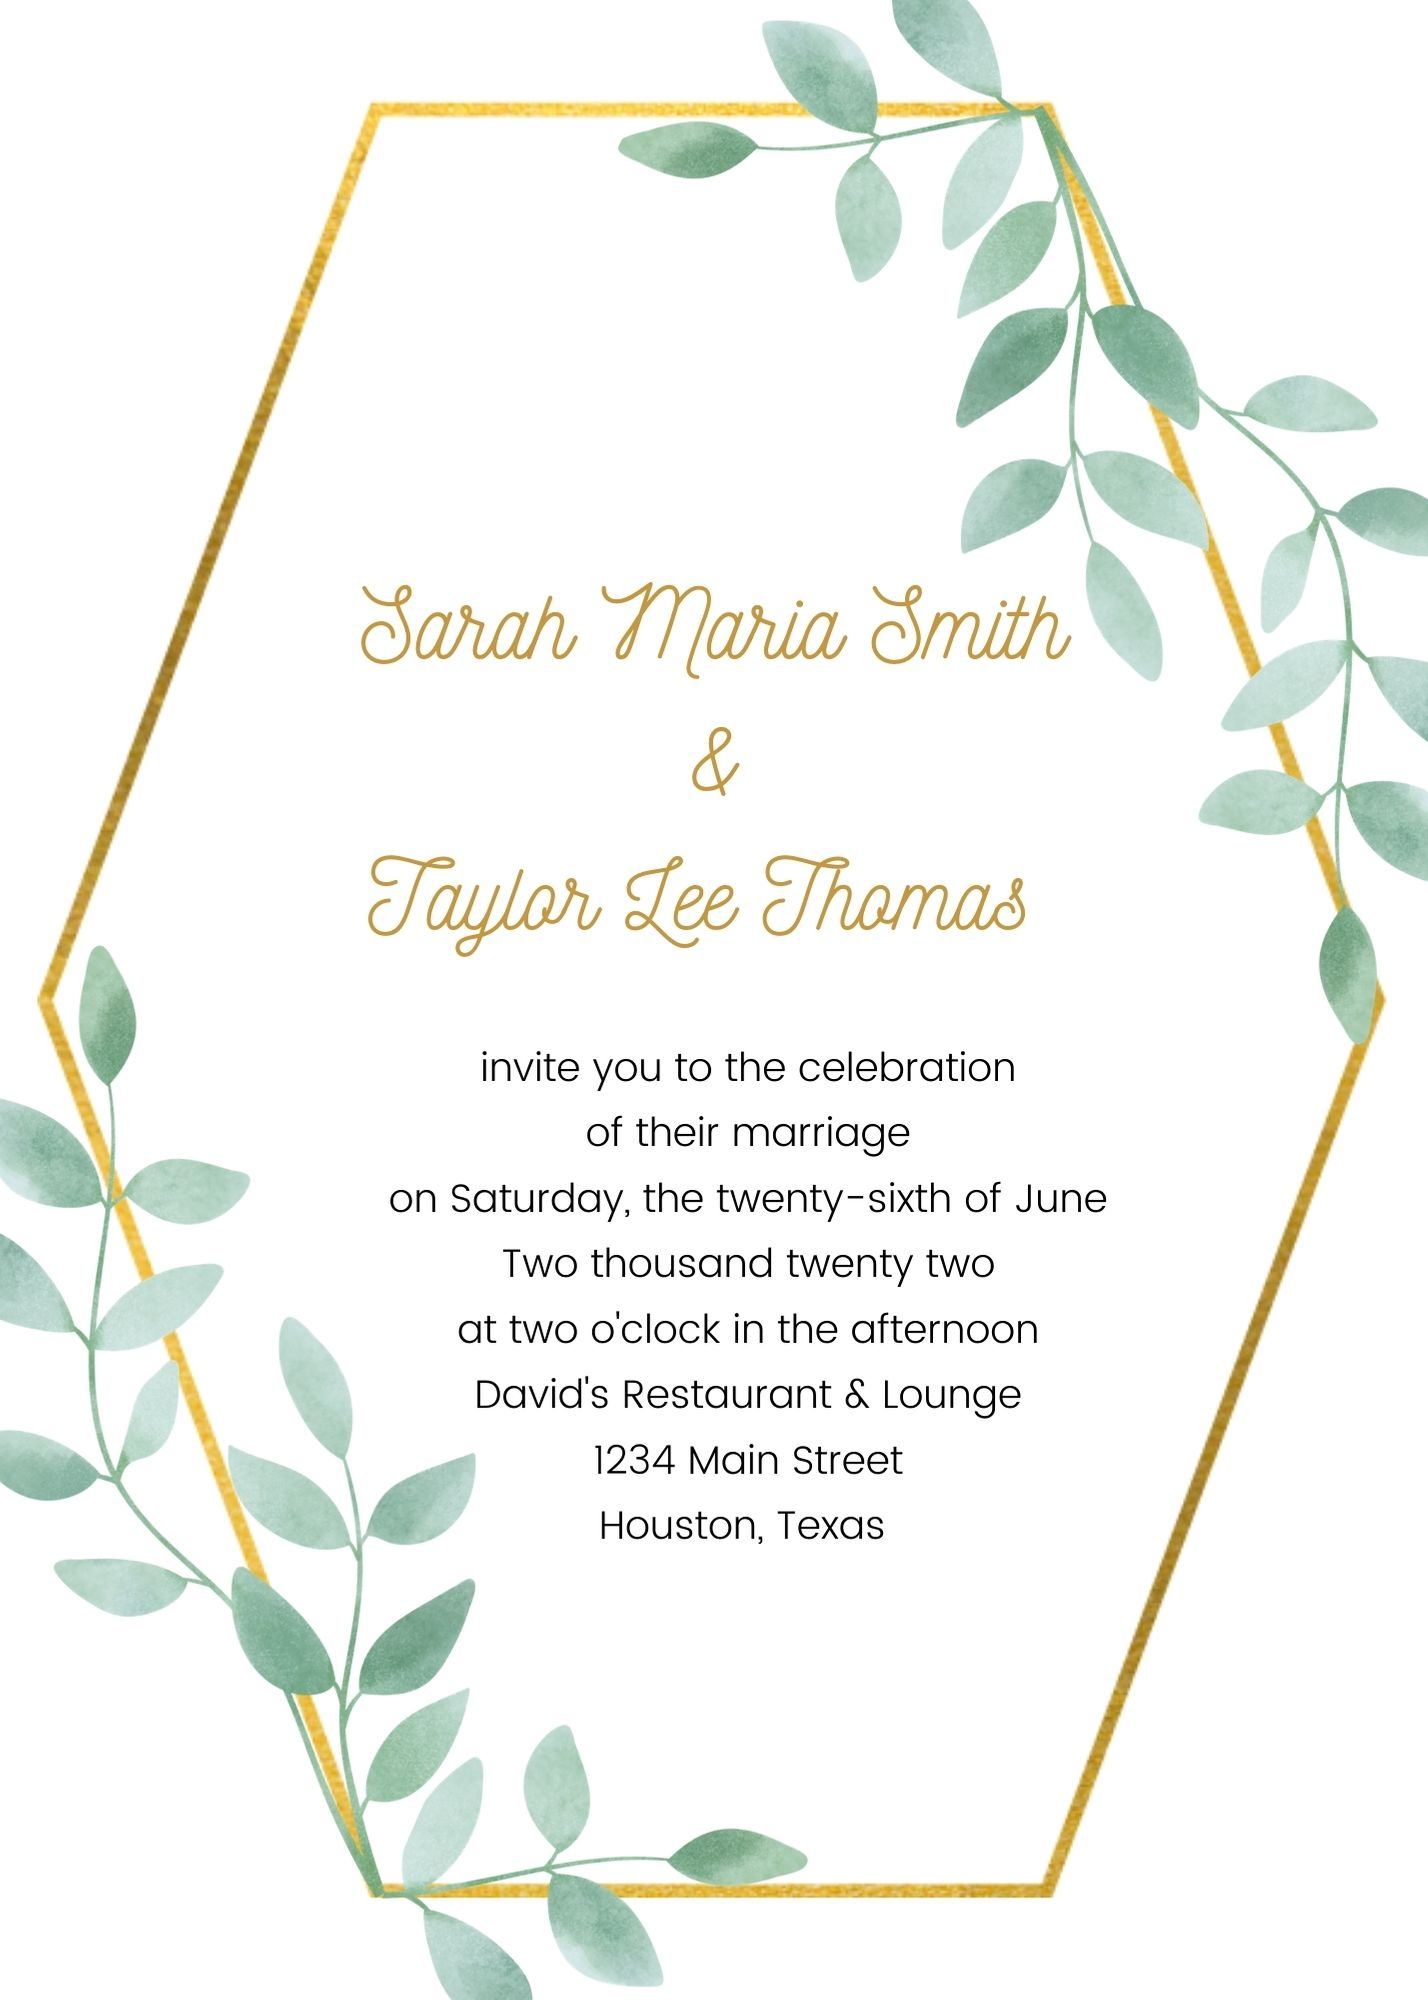 invitation for wedding hosted by the couple